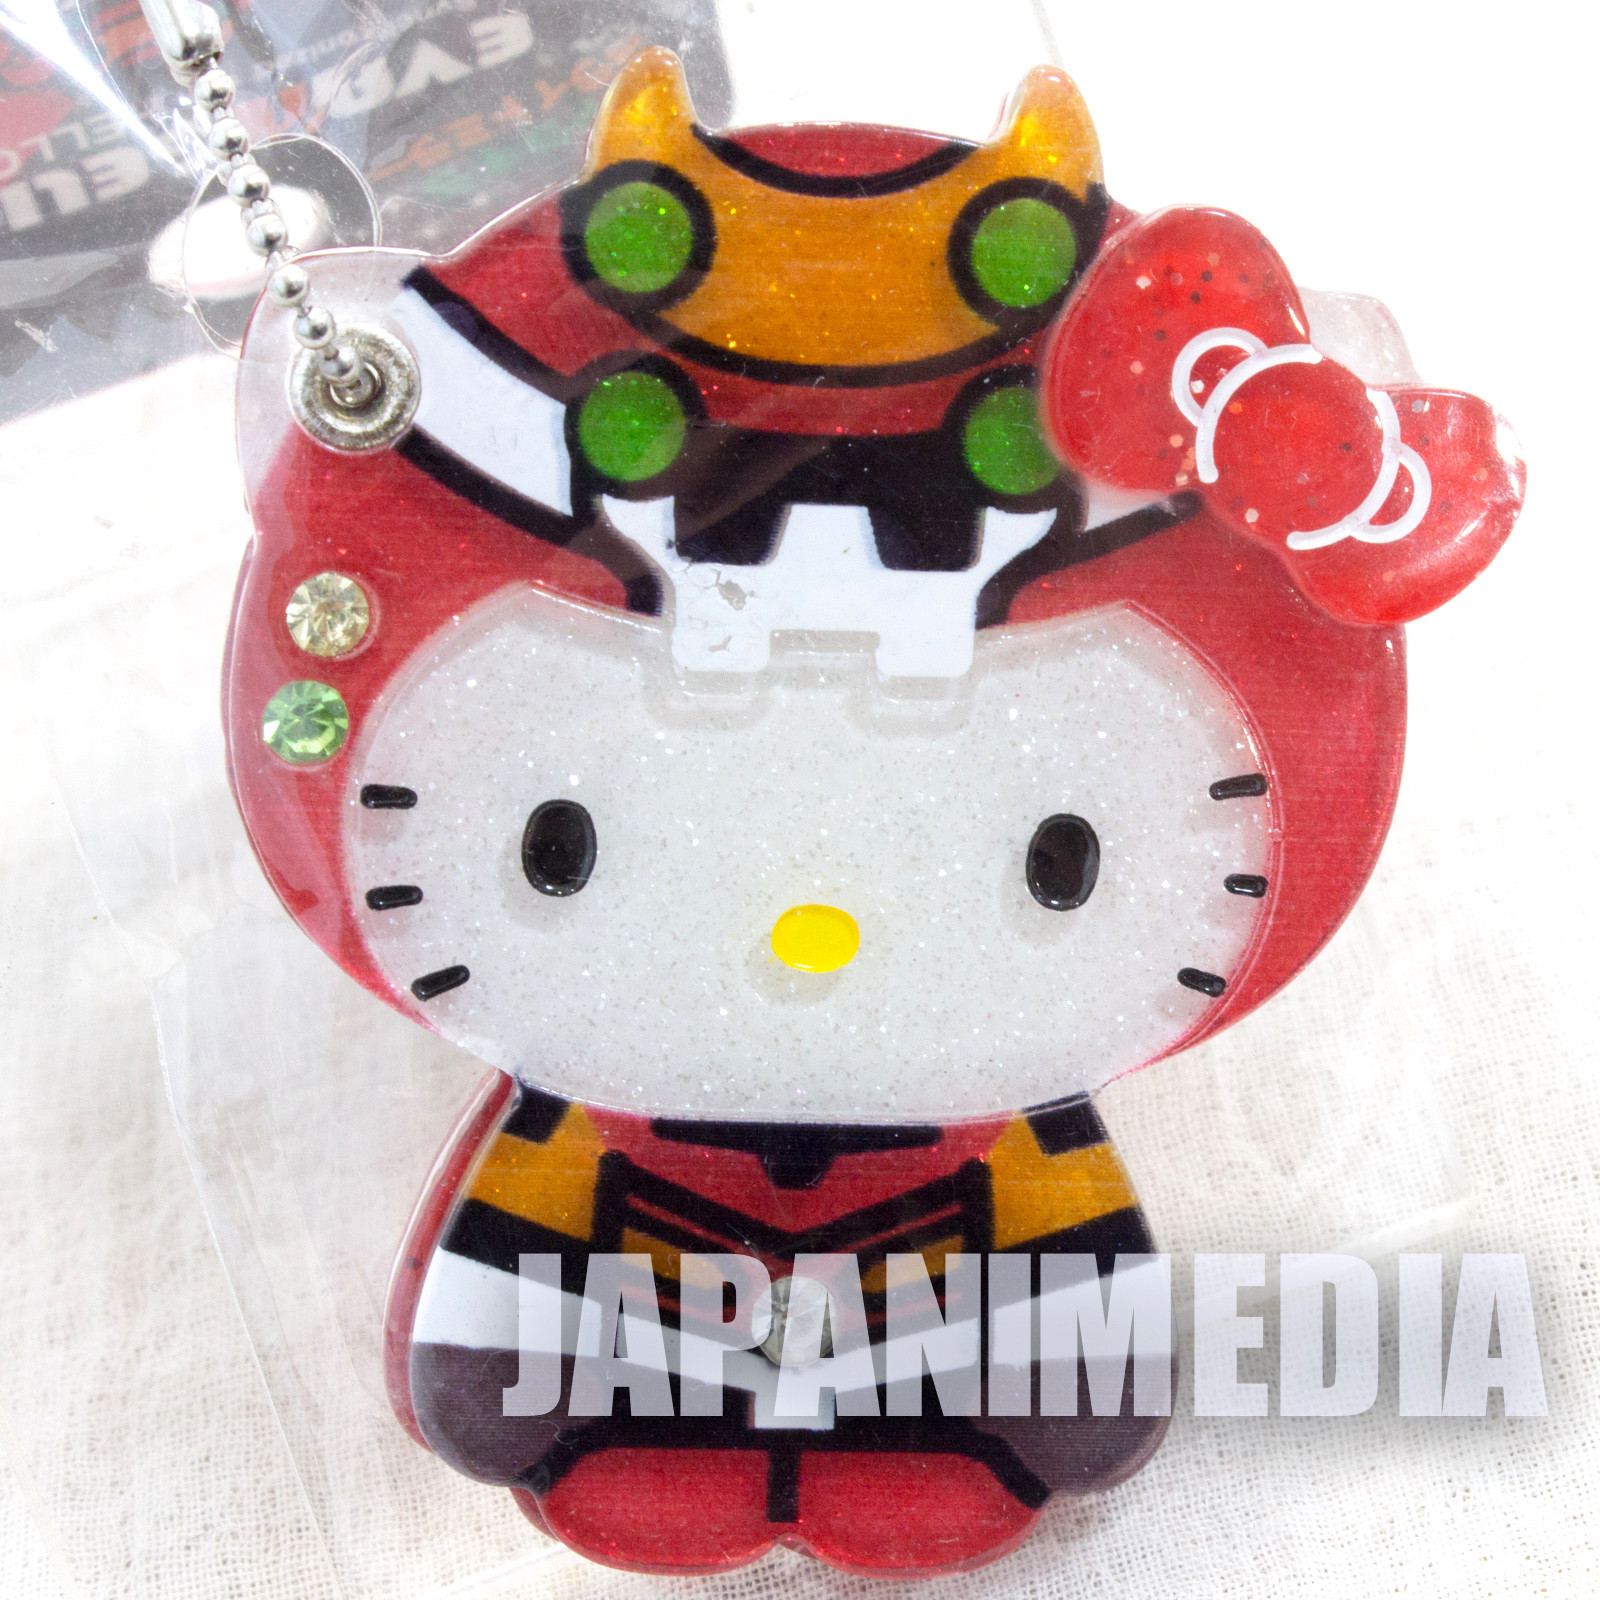 Evangelion x Hello Kitty EVA-02 Hand Mirror Ballchain Sanrio JAPAN